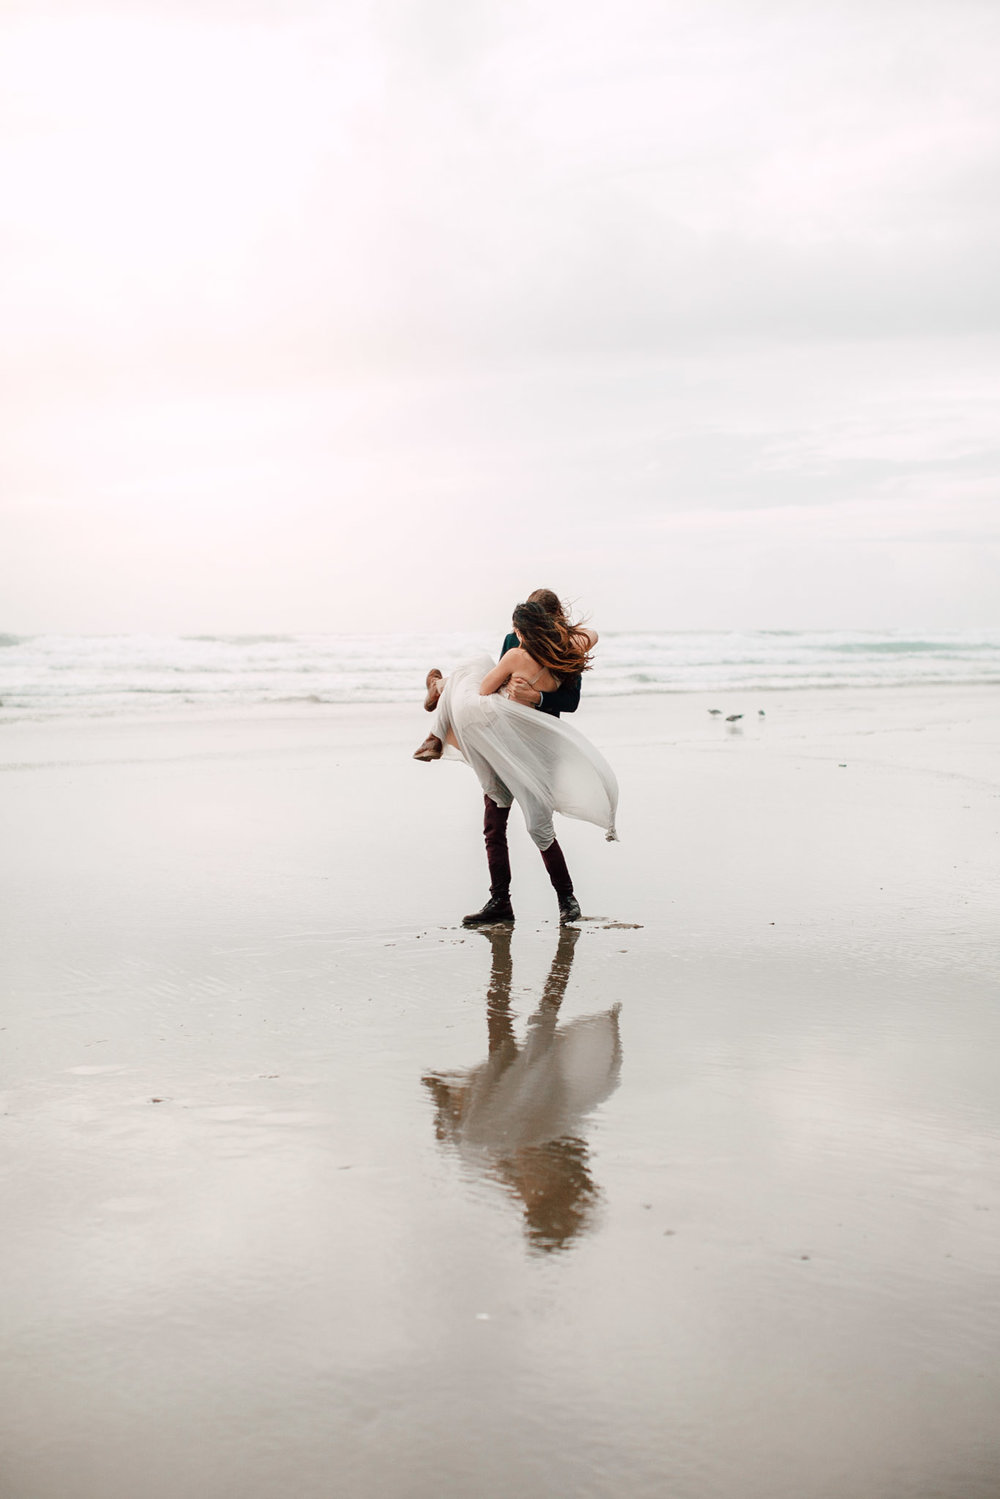 Oregon-Coast-Manzanita-Beach-Engagement-Pia-Anna-Christian-Wedding-Photography-PNW-GB-20.jpg